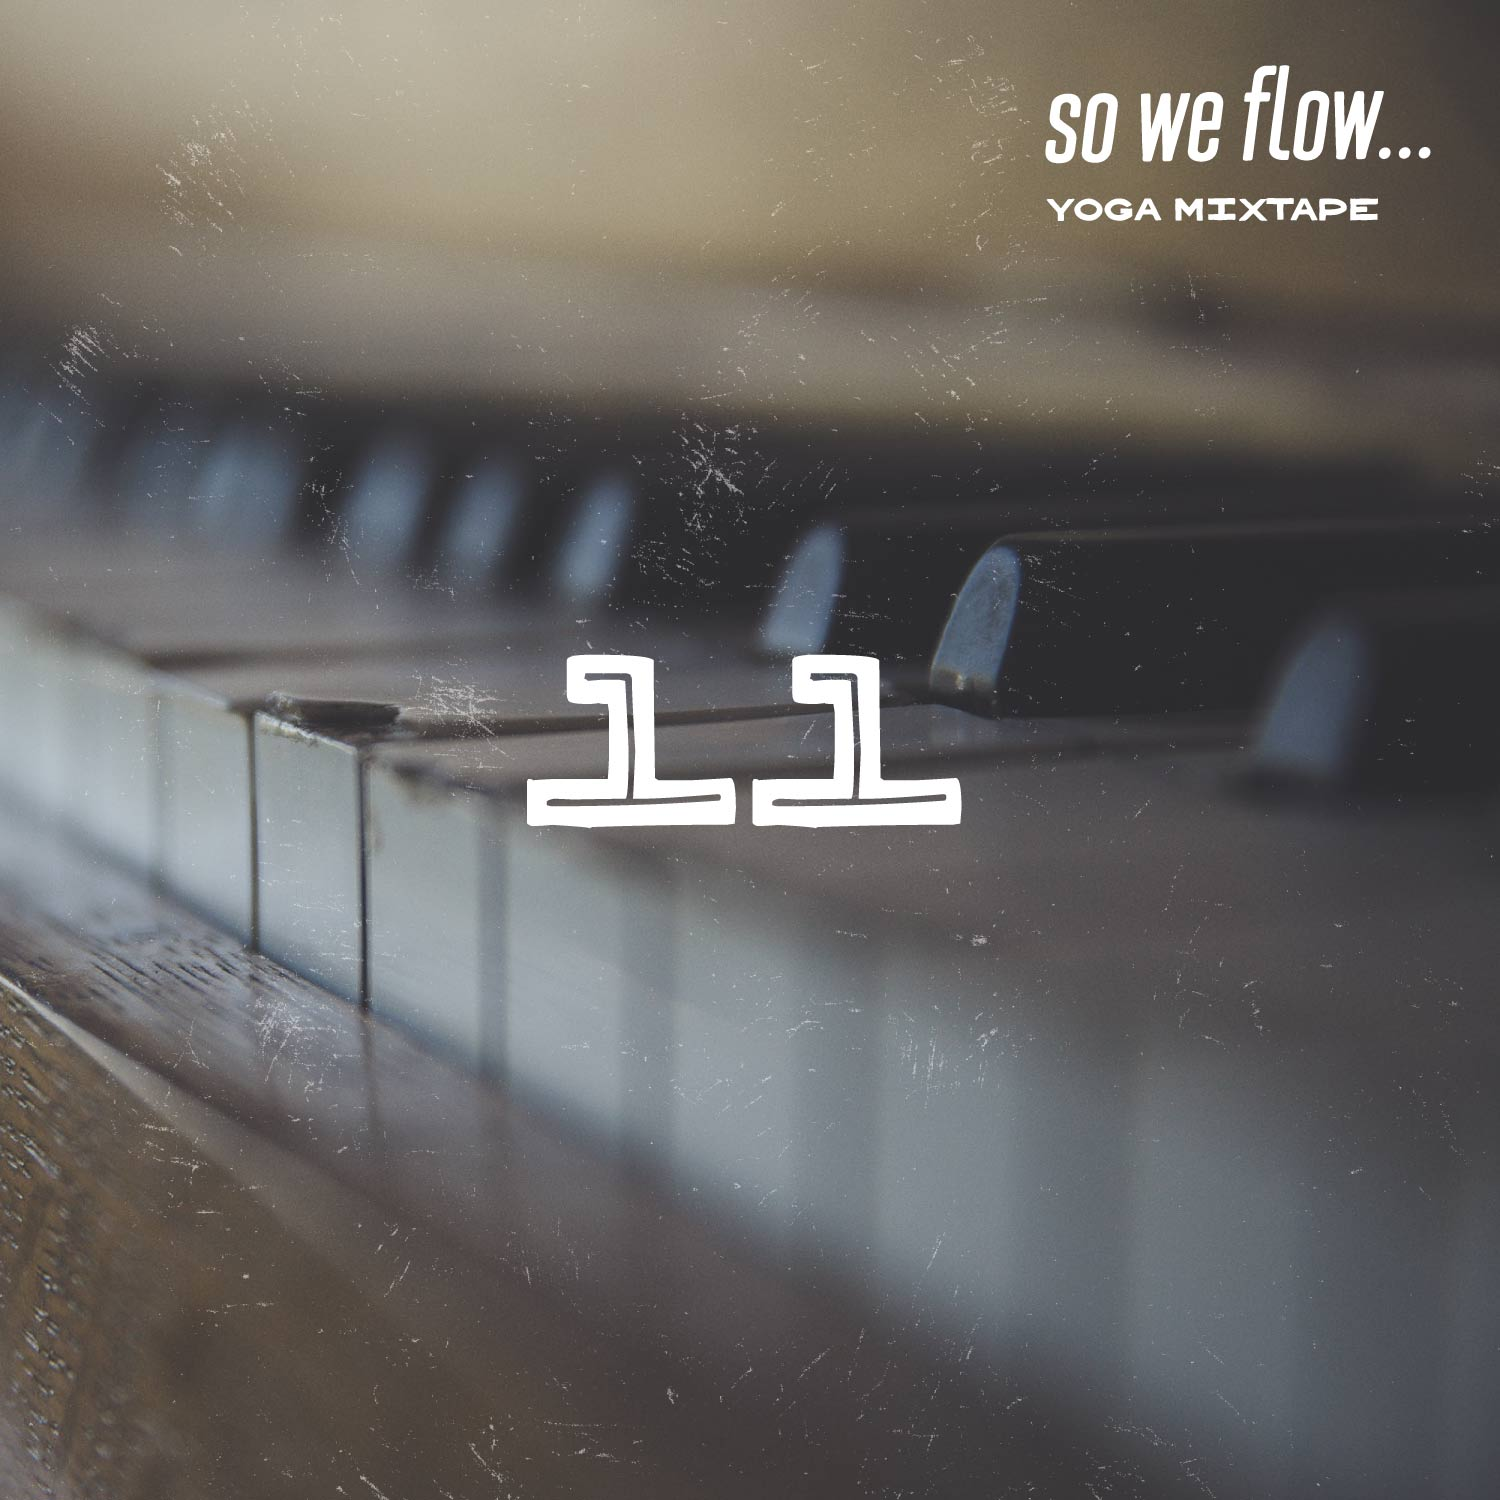 so we flow... Yoga mixtape - 05/18 - See you in savasana - album art